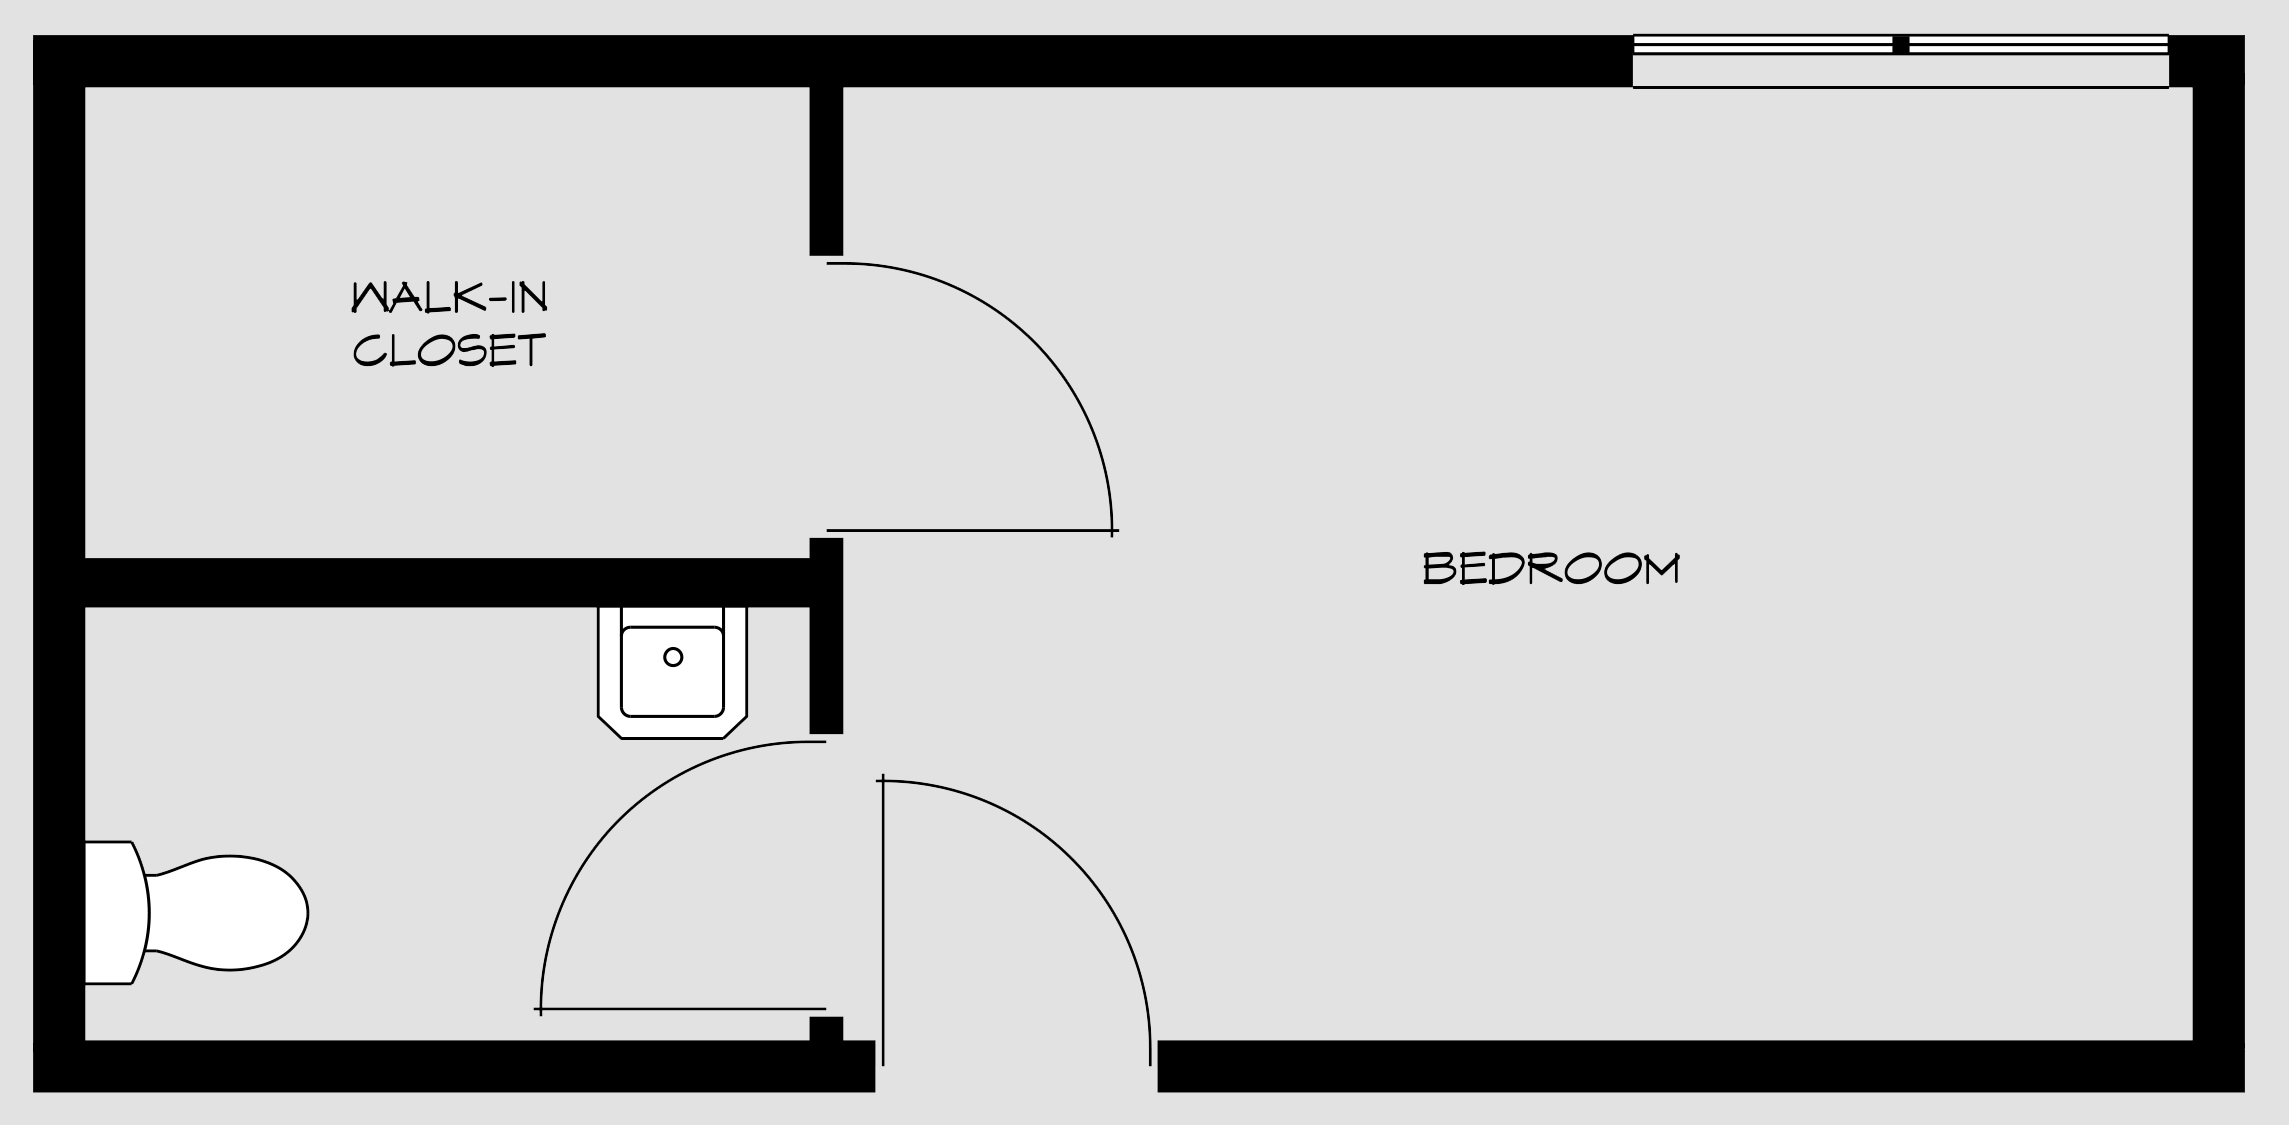 floorpan for bedroom 6